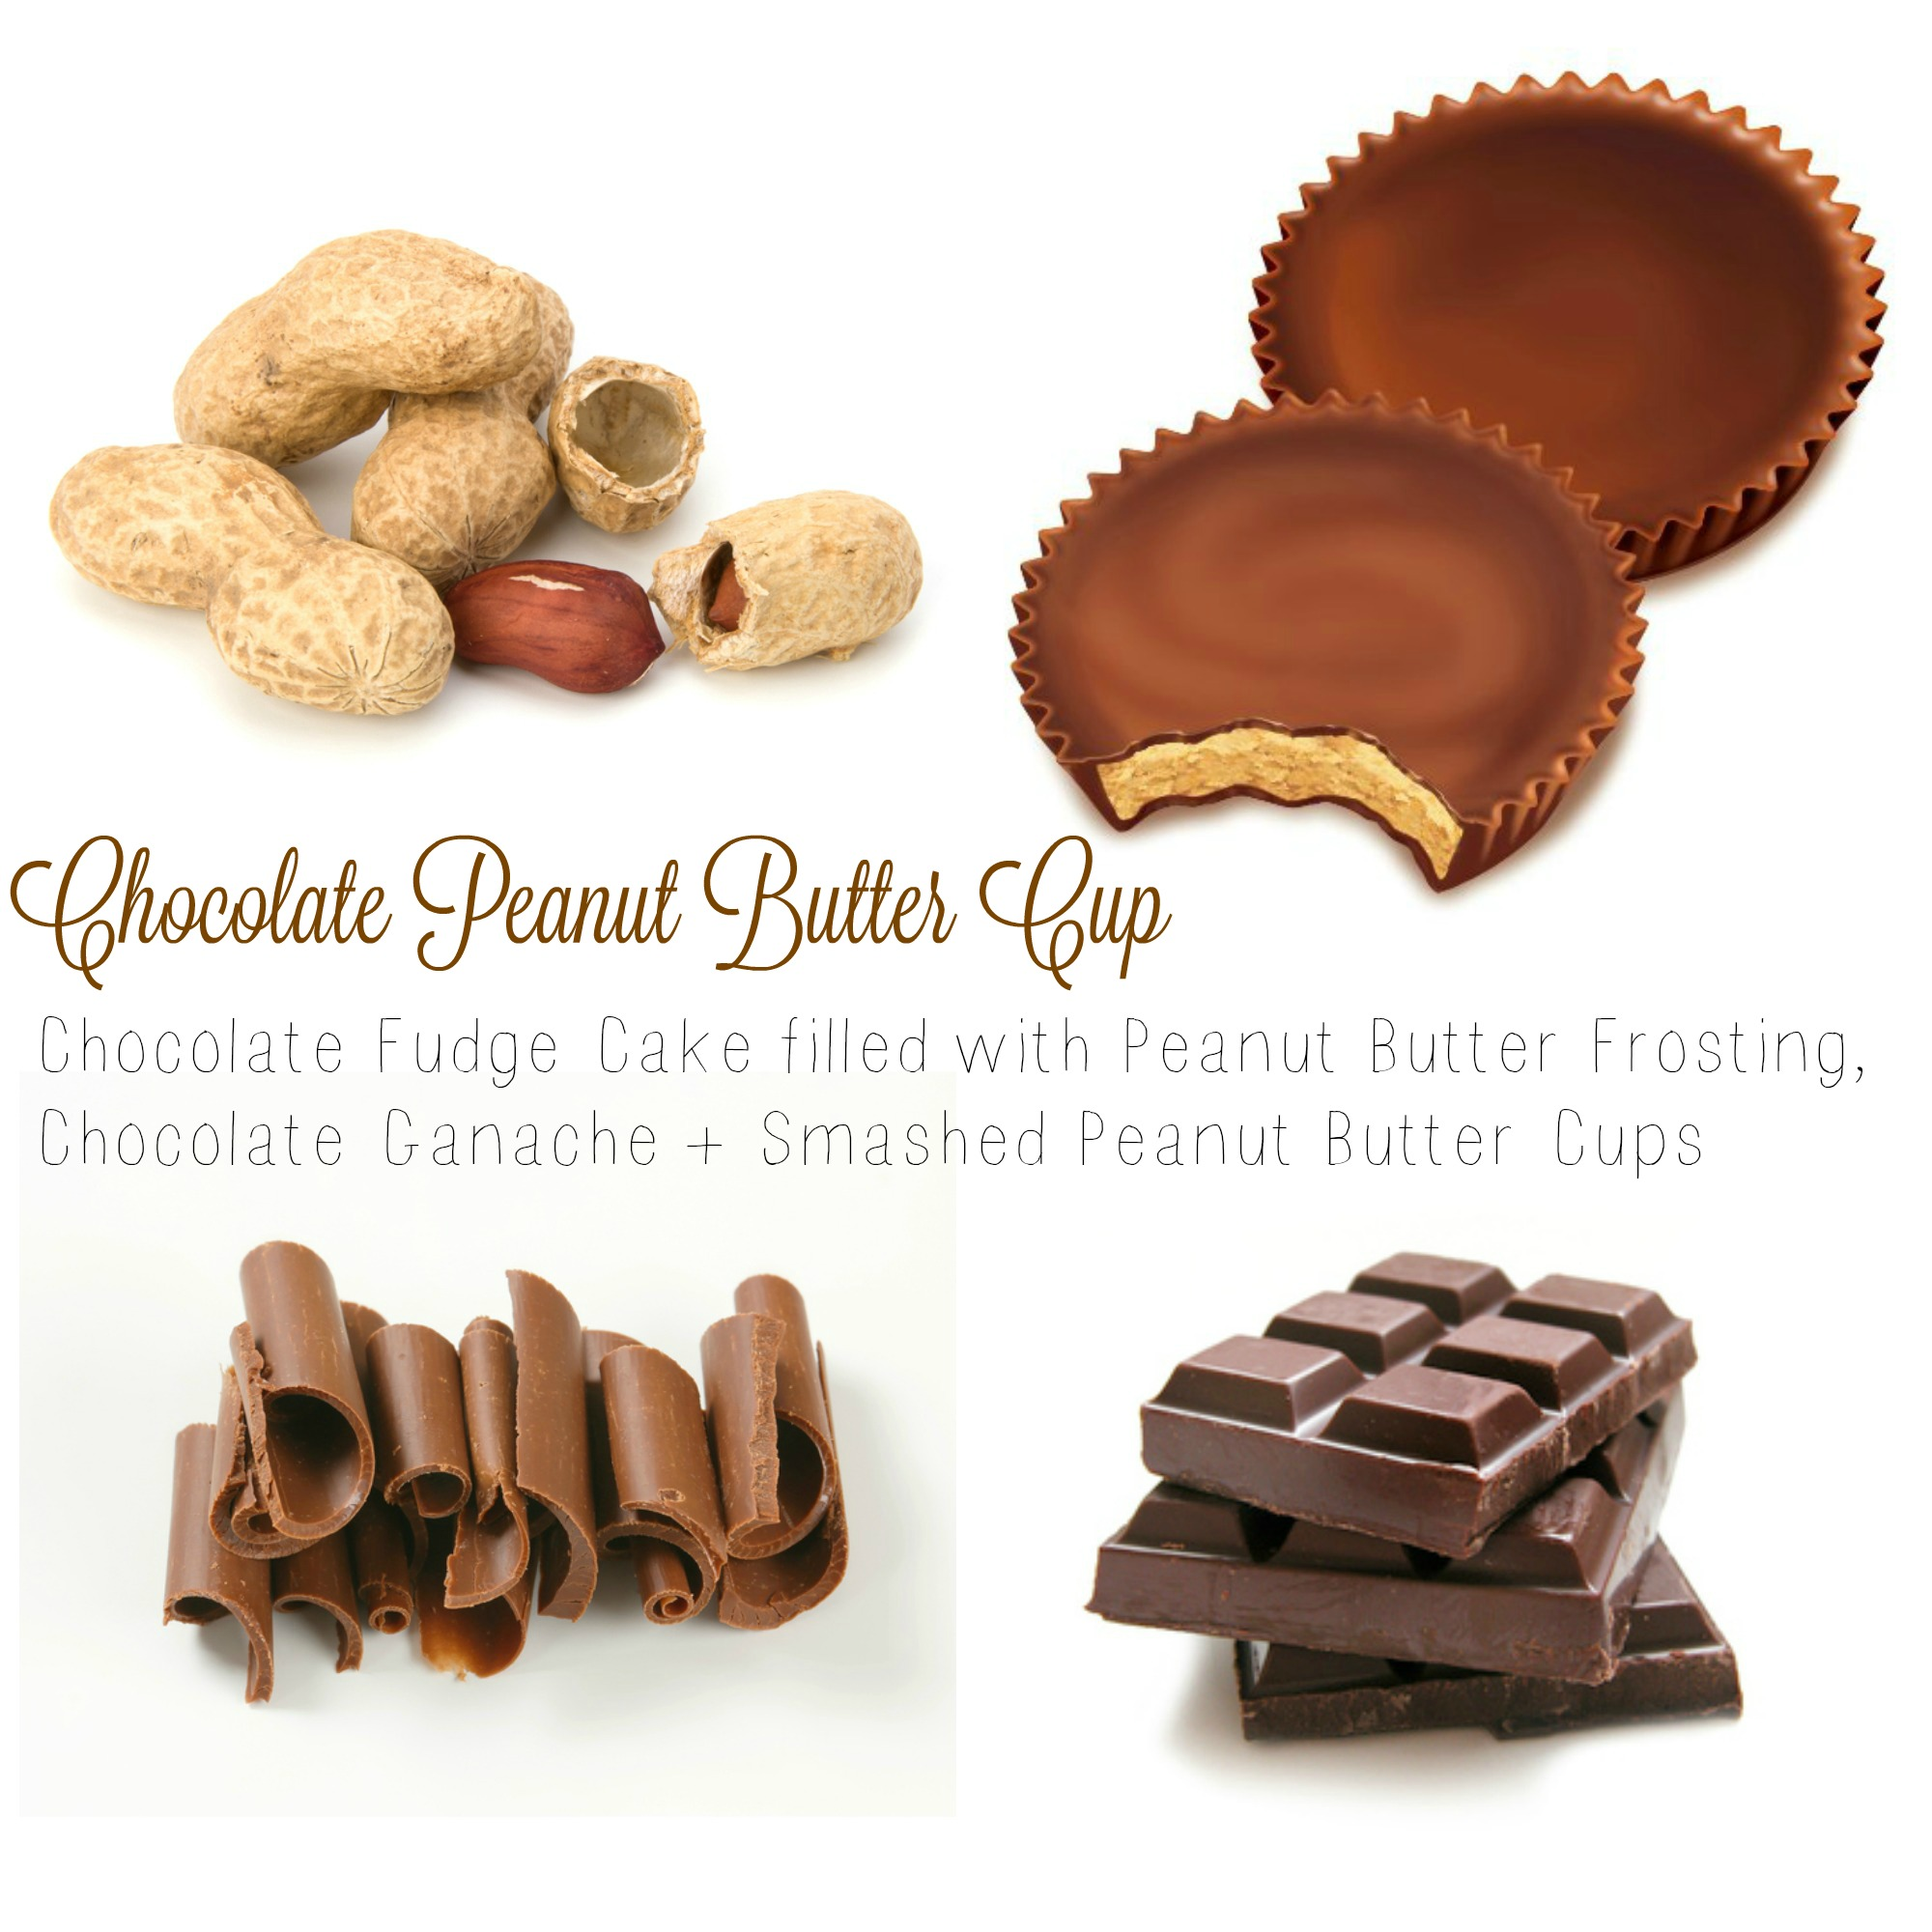 Chocolate Peanut Butter Cup.jpg